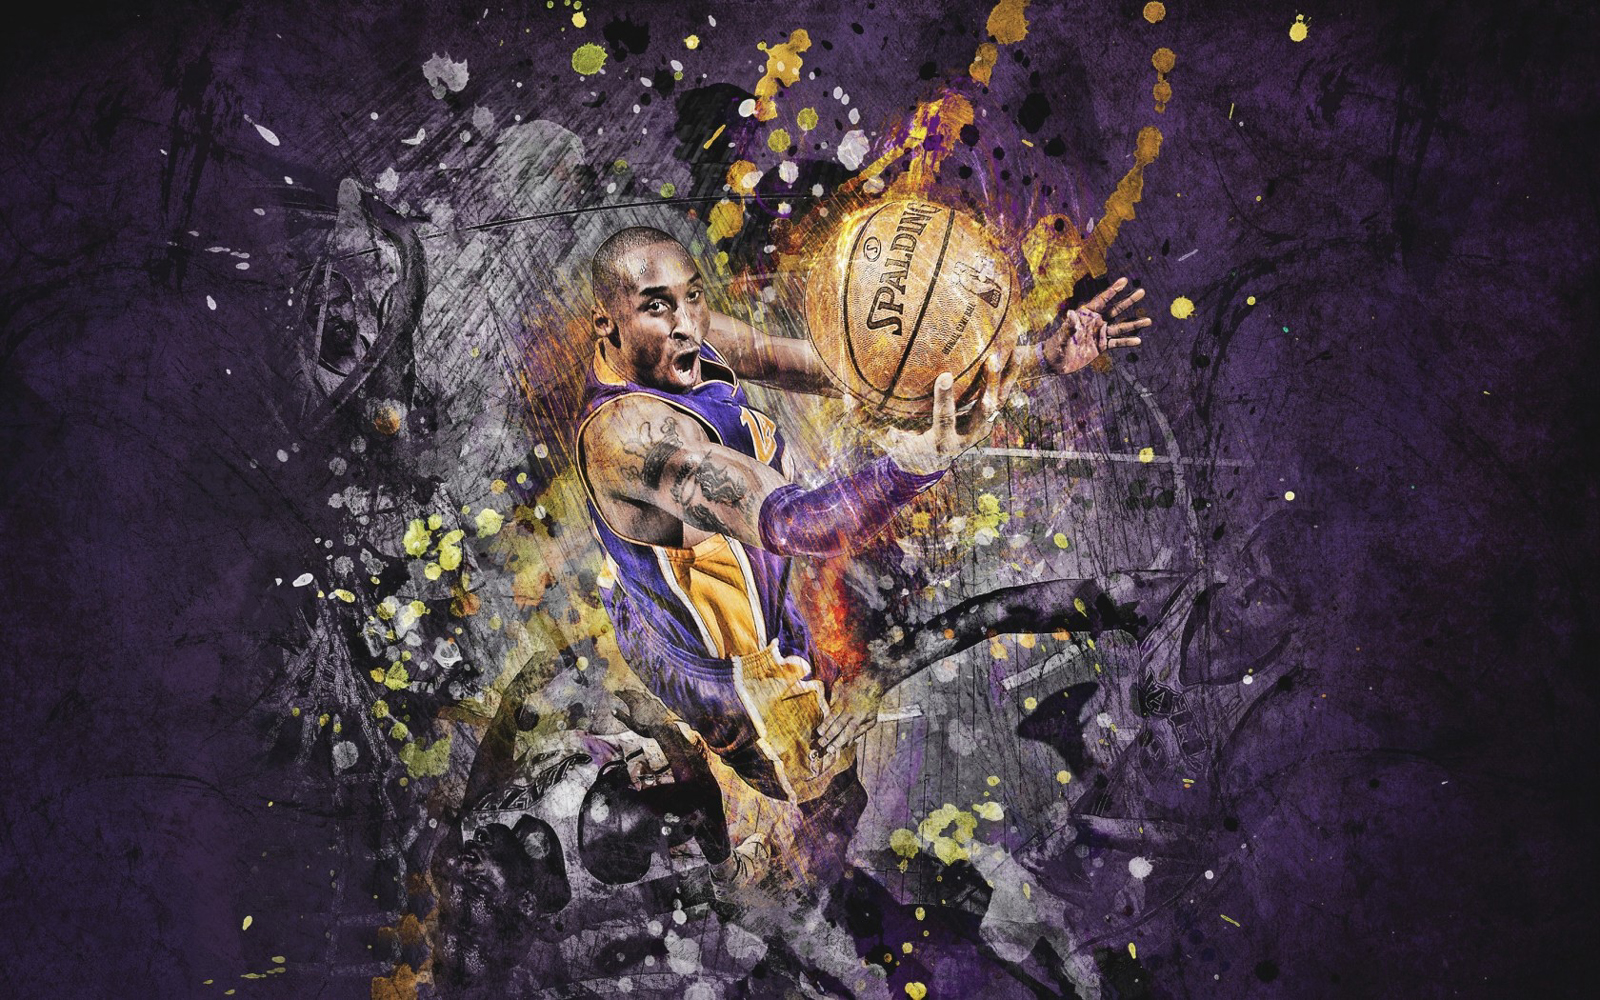 http://3.bp.blogspot.com/-x8aktPiXQp8/UPX7I_NLoSI/AAAAAAAAJ8w/TSONZfv6S7U/s1600/Kobe_Bryant_2013_Los_Angeles_Lakers_NBA_USA_Hd_Desktop_Wallpaper_citiesandteams.blogspot.com.jpg